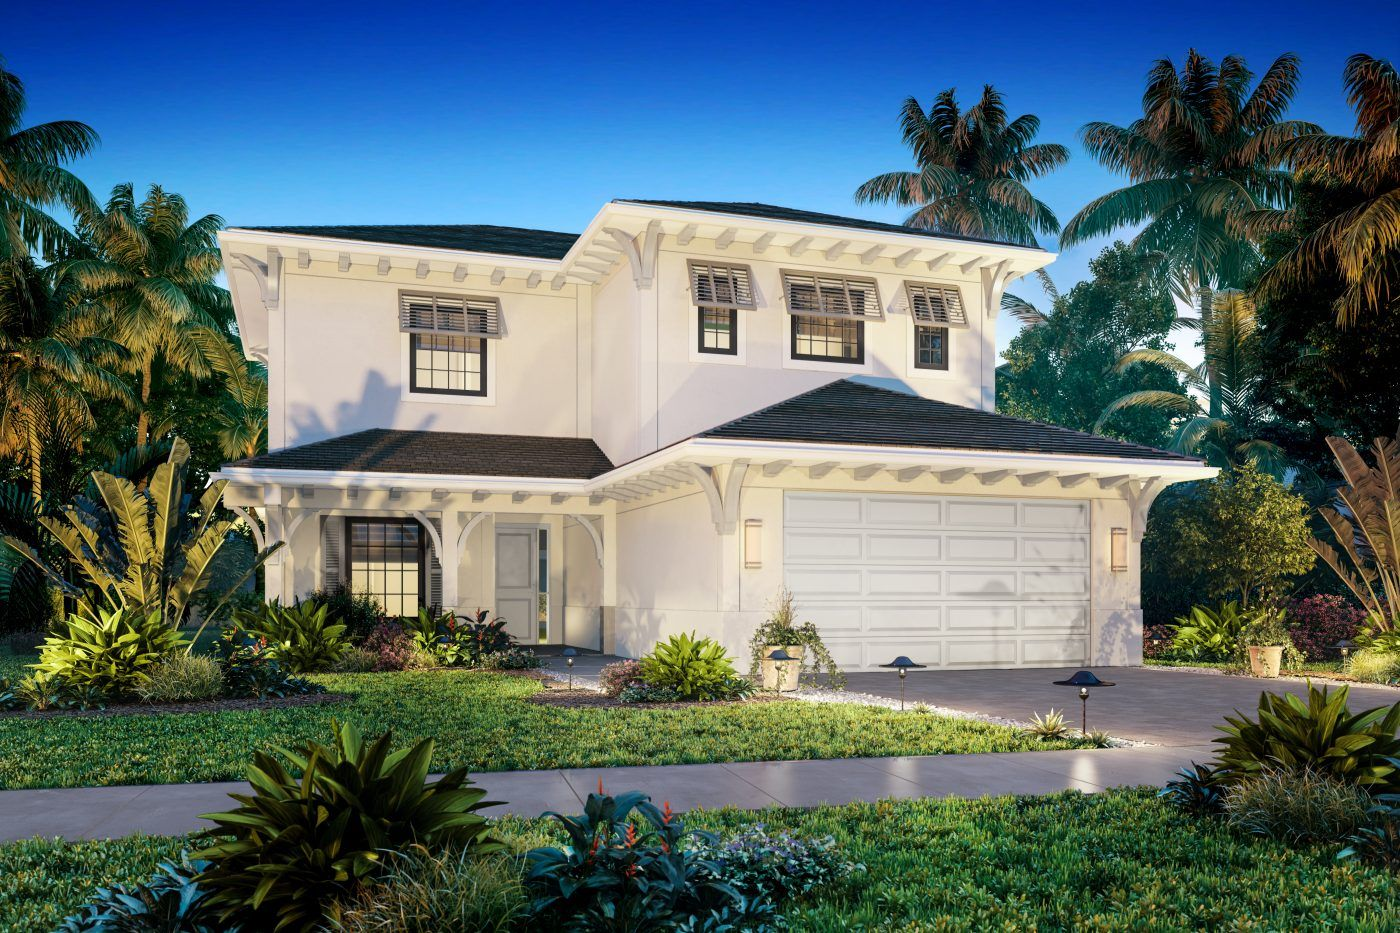 Single Family for Sale at Residences At Banyan Cay - Tortuga 3089 Gin Berry Way West Palm Beach, Florida 33401 United States